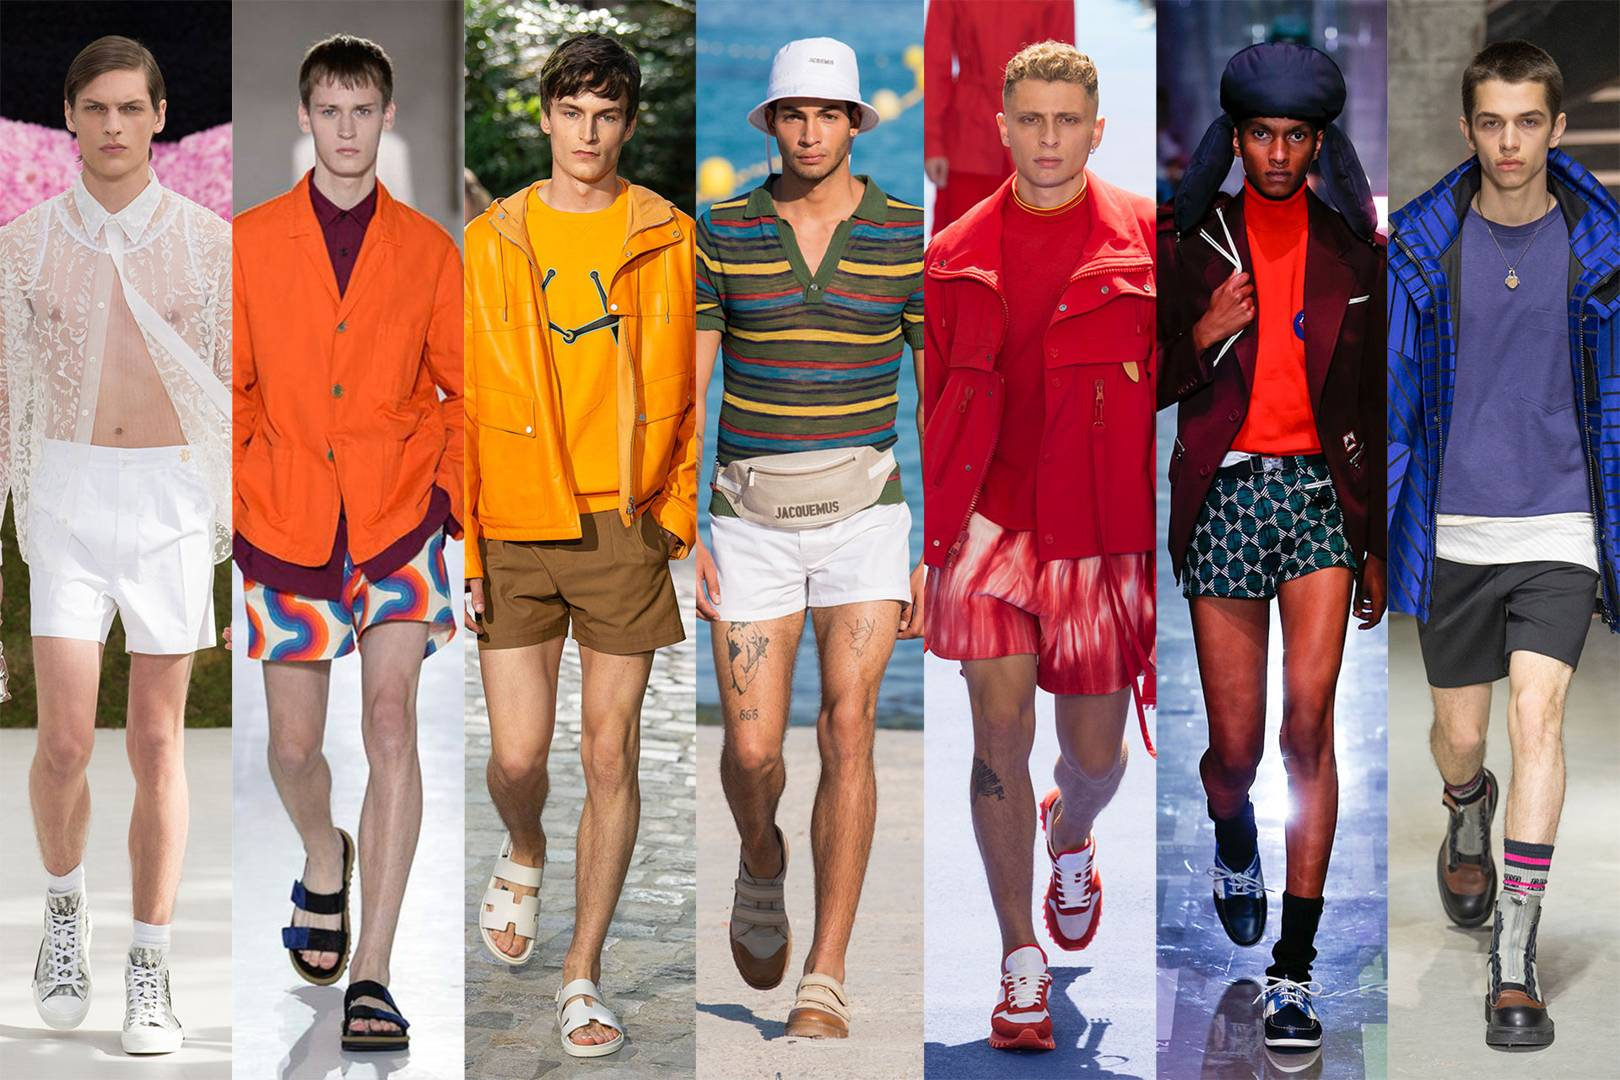 Moda Guardaroba Maschile Moda Uomo Tendenze Estate 2019 Lo Sportswear Dominerà Luxgallery